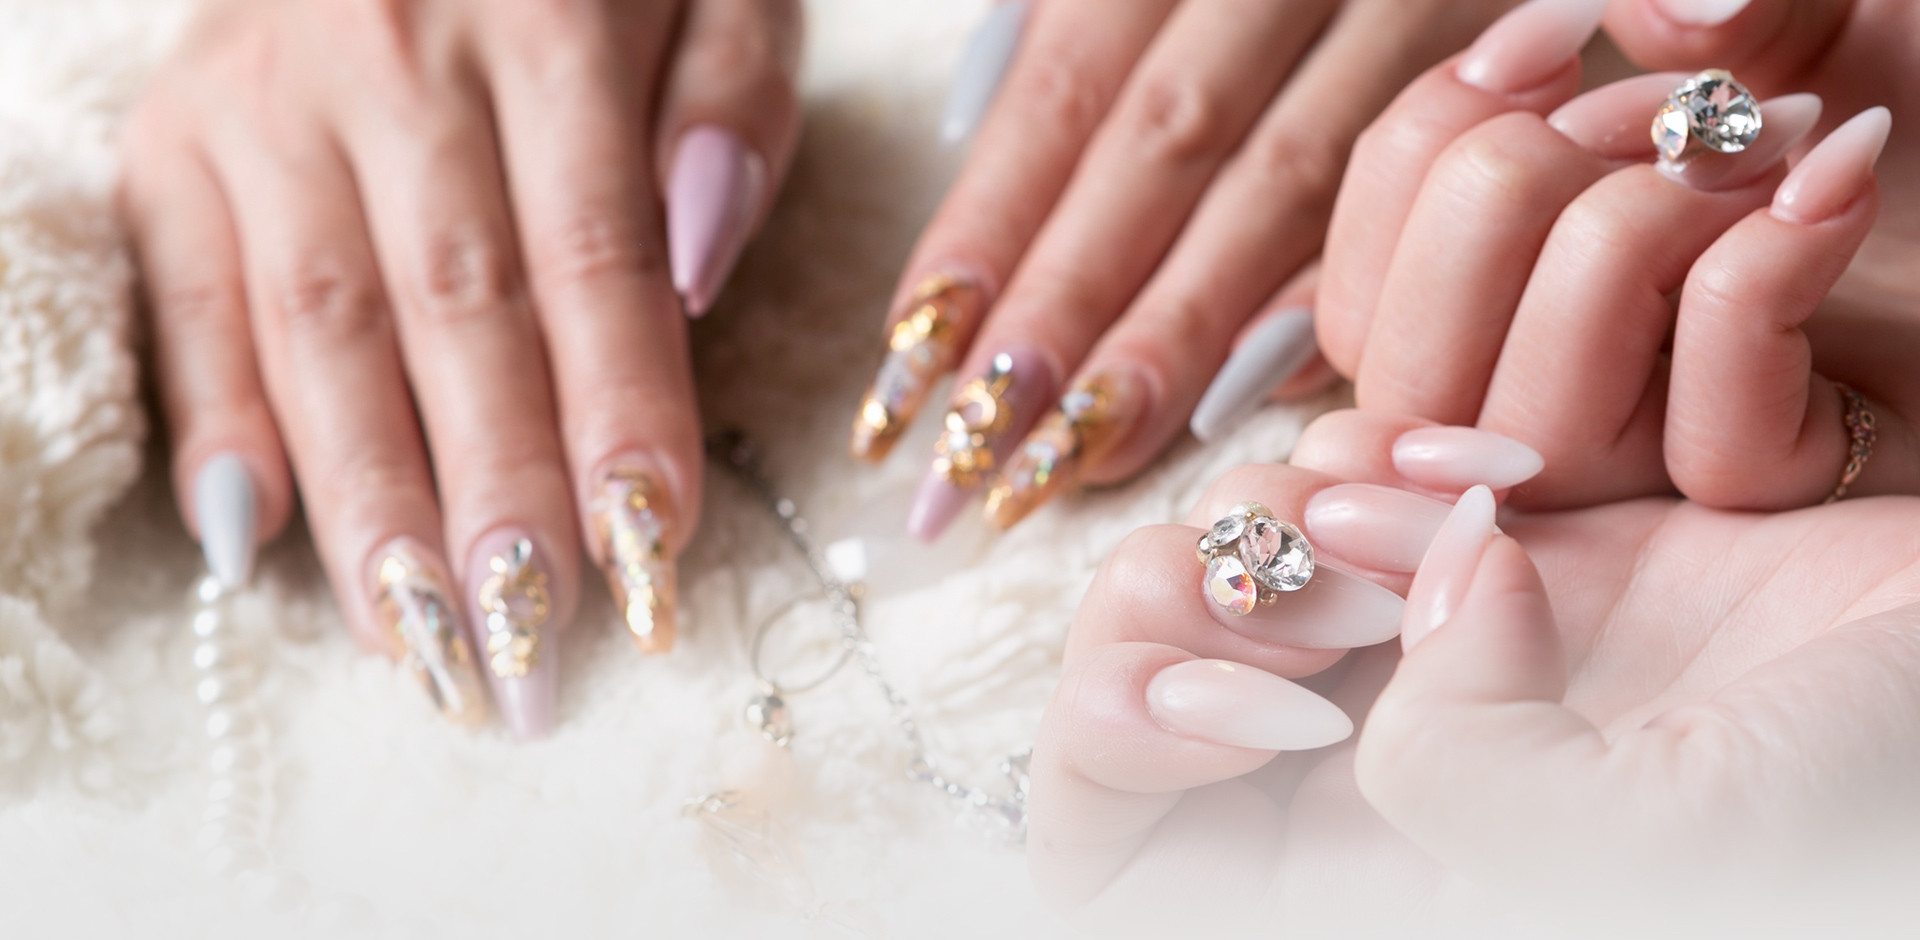 Nail&Beauty Salon 3Nine